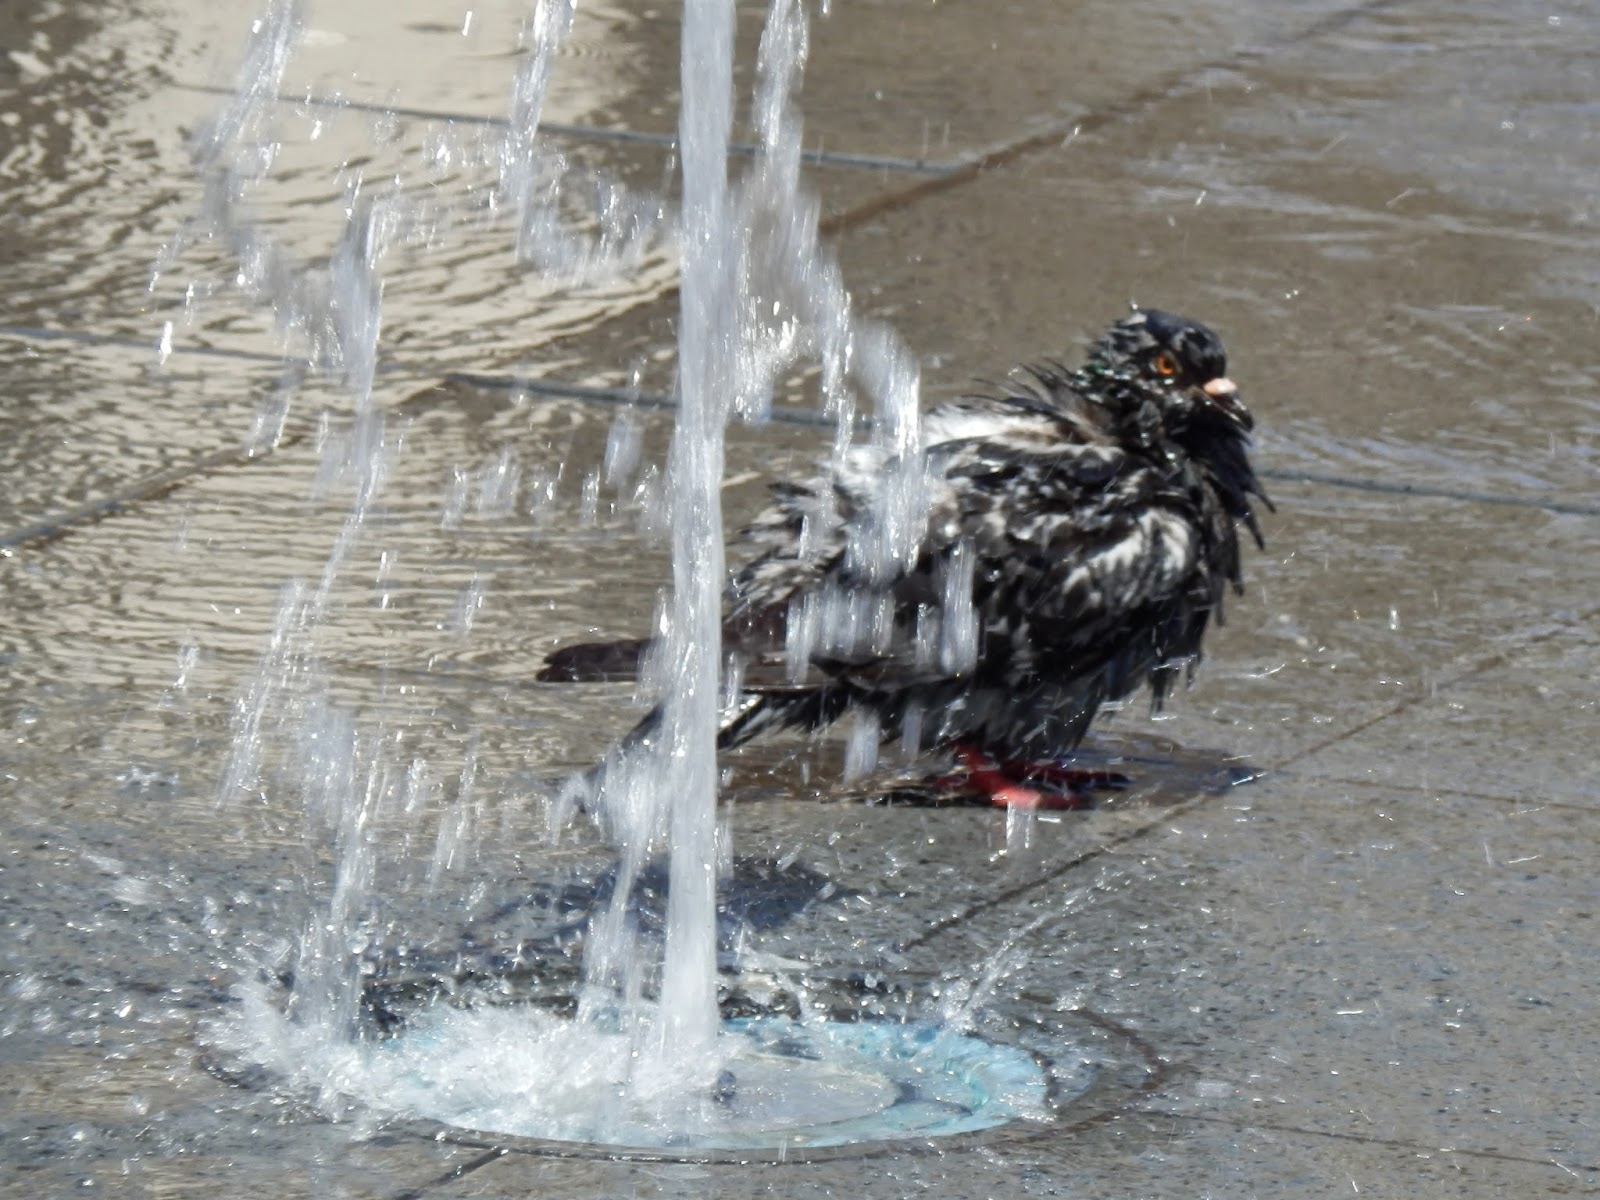 A bird taking a shower